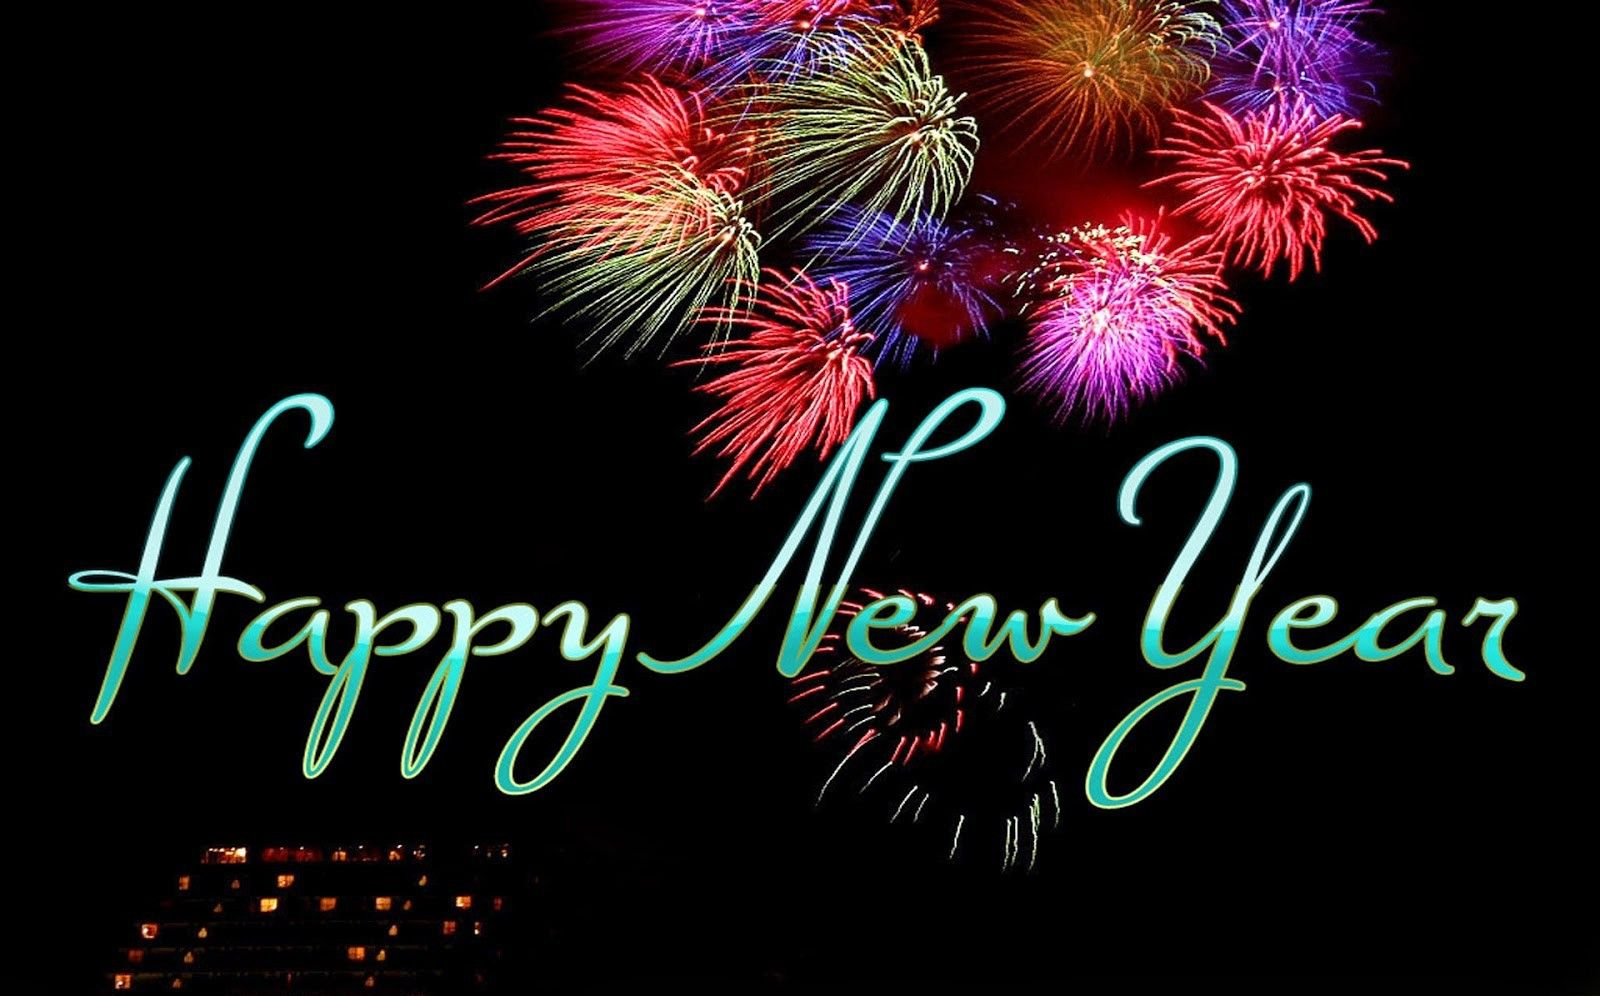 Download Happy New Year Live Wallpaper For PC Windows and Mac APK 1600x996